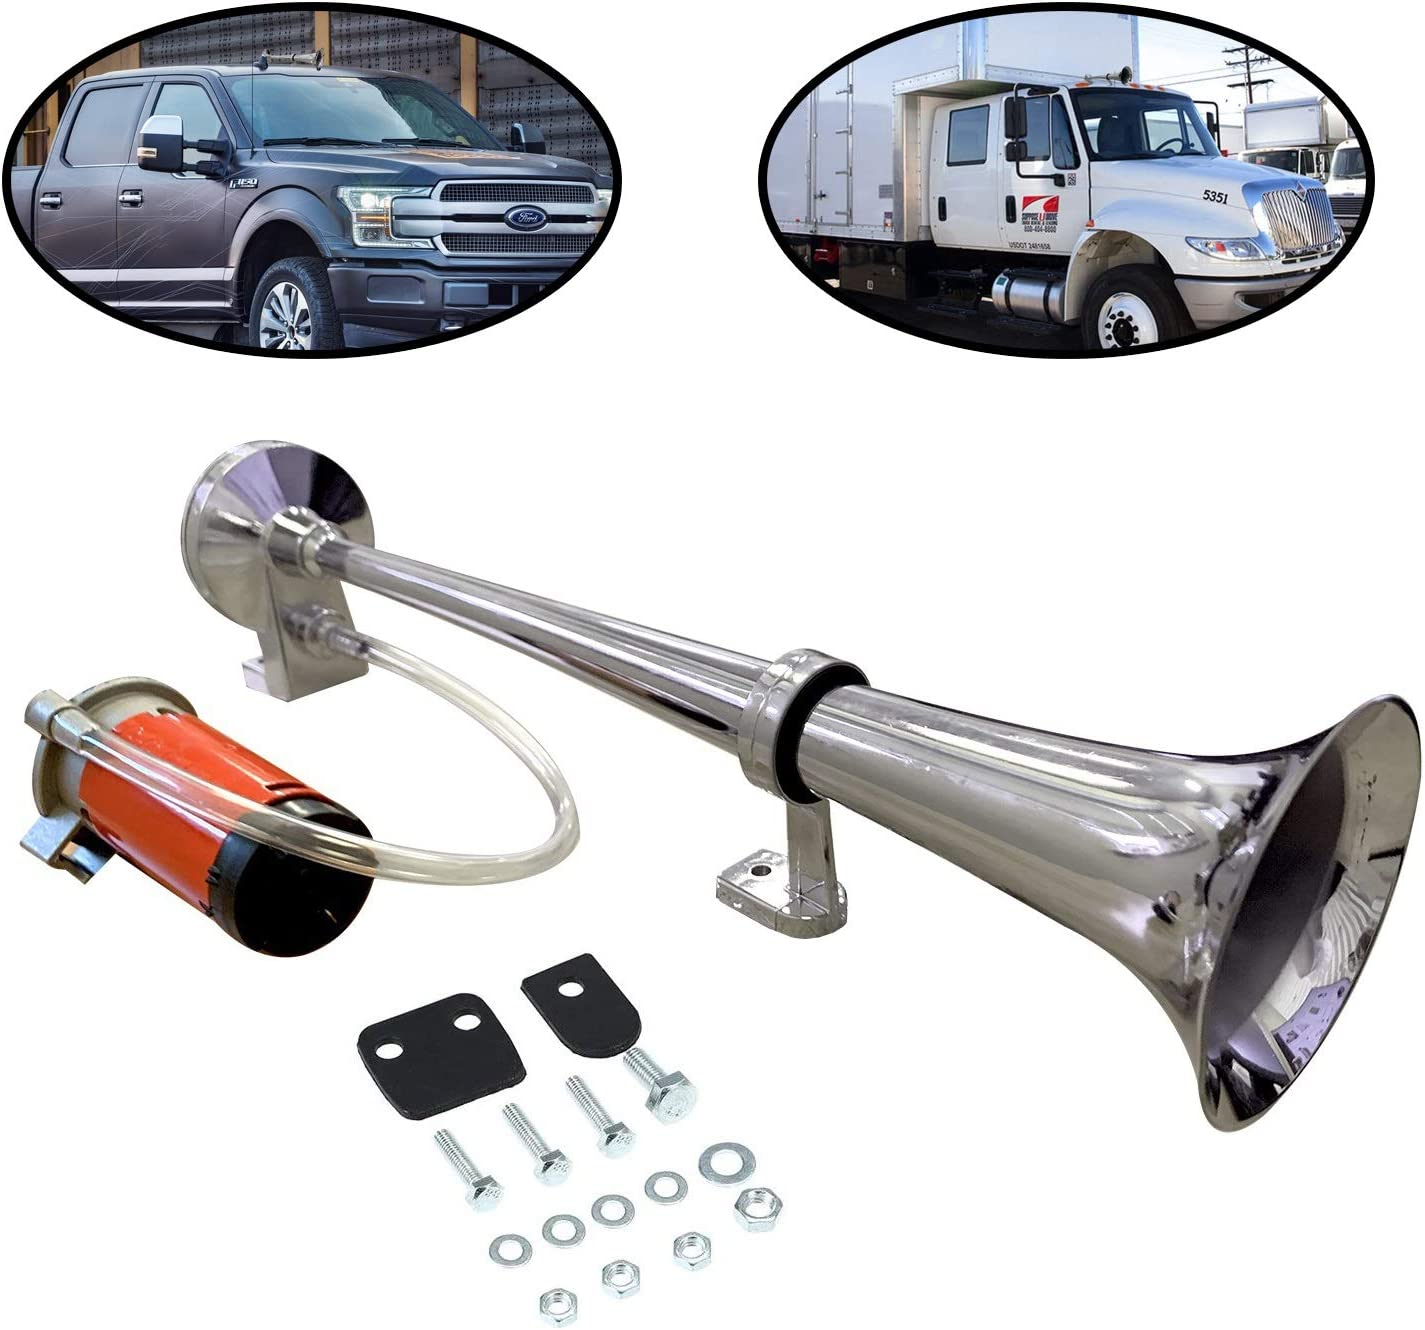 SCITOO 4 Trumpet Train Truck Horn12V 105db balck/ï/¼/‰ Easy to Install, Electric Trains Horns for Any 12V Vehicles Truck Horn zinc